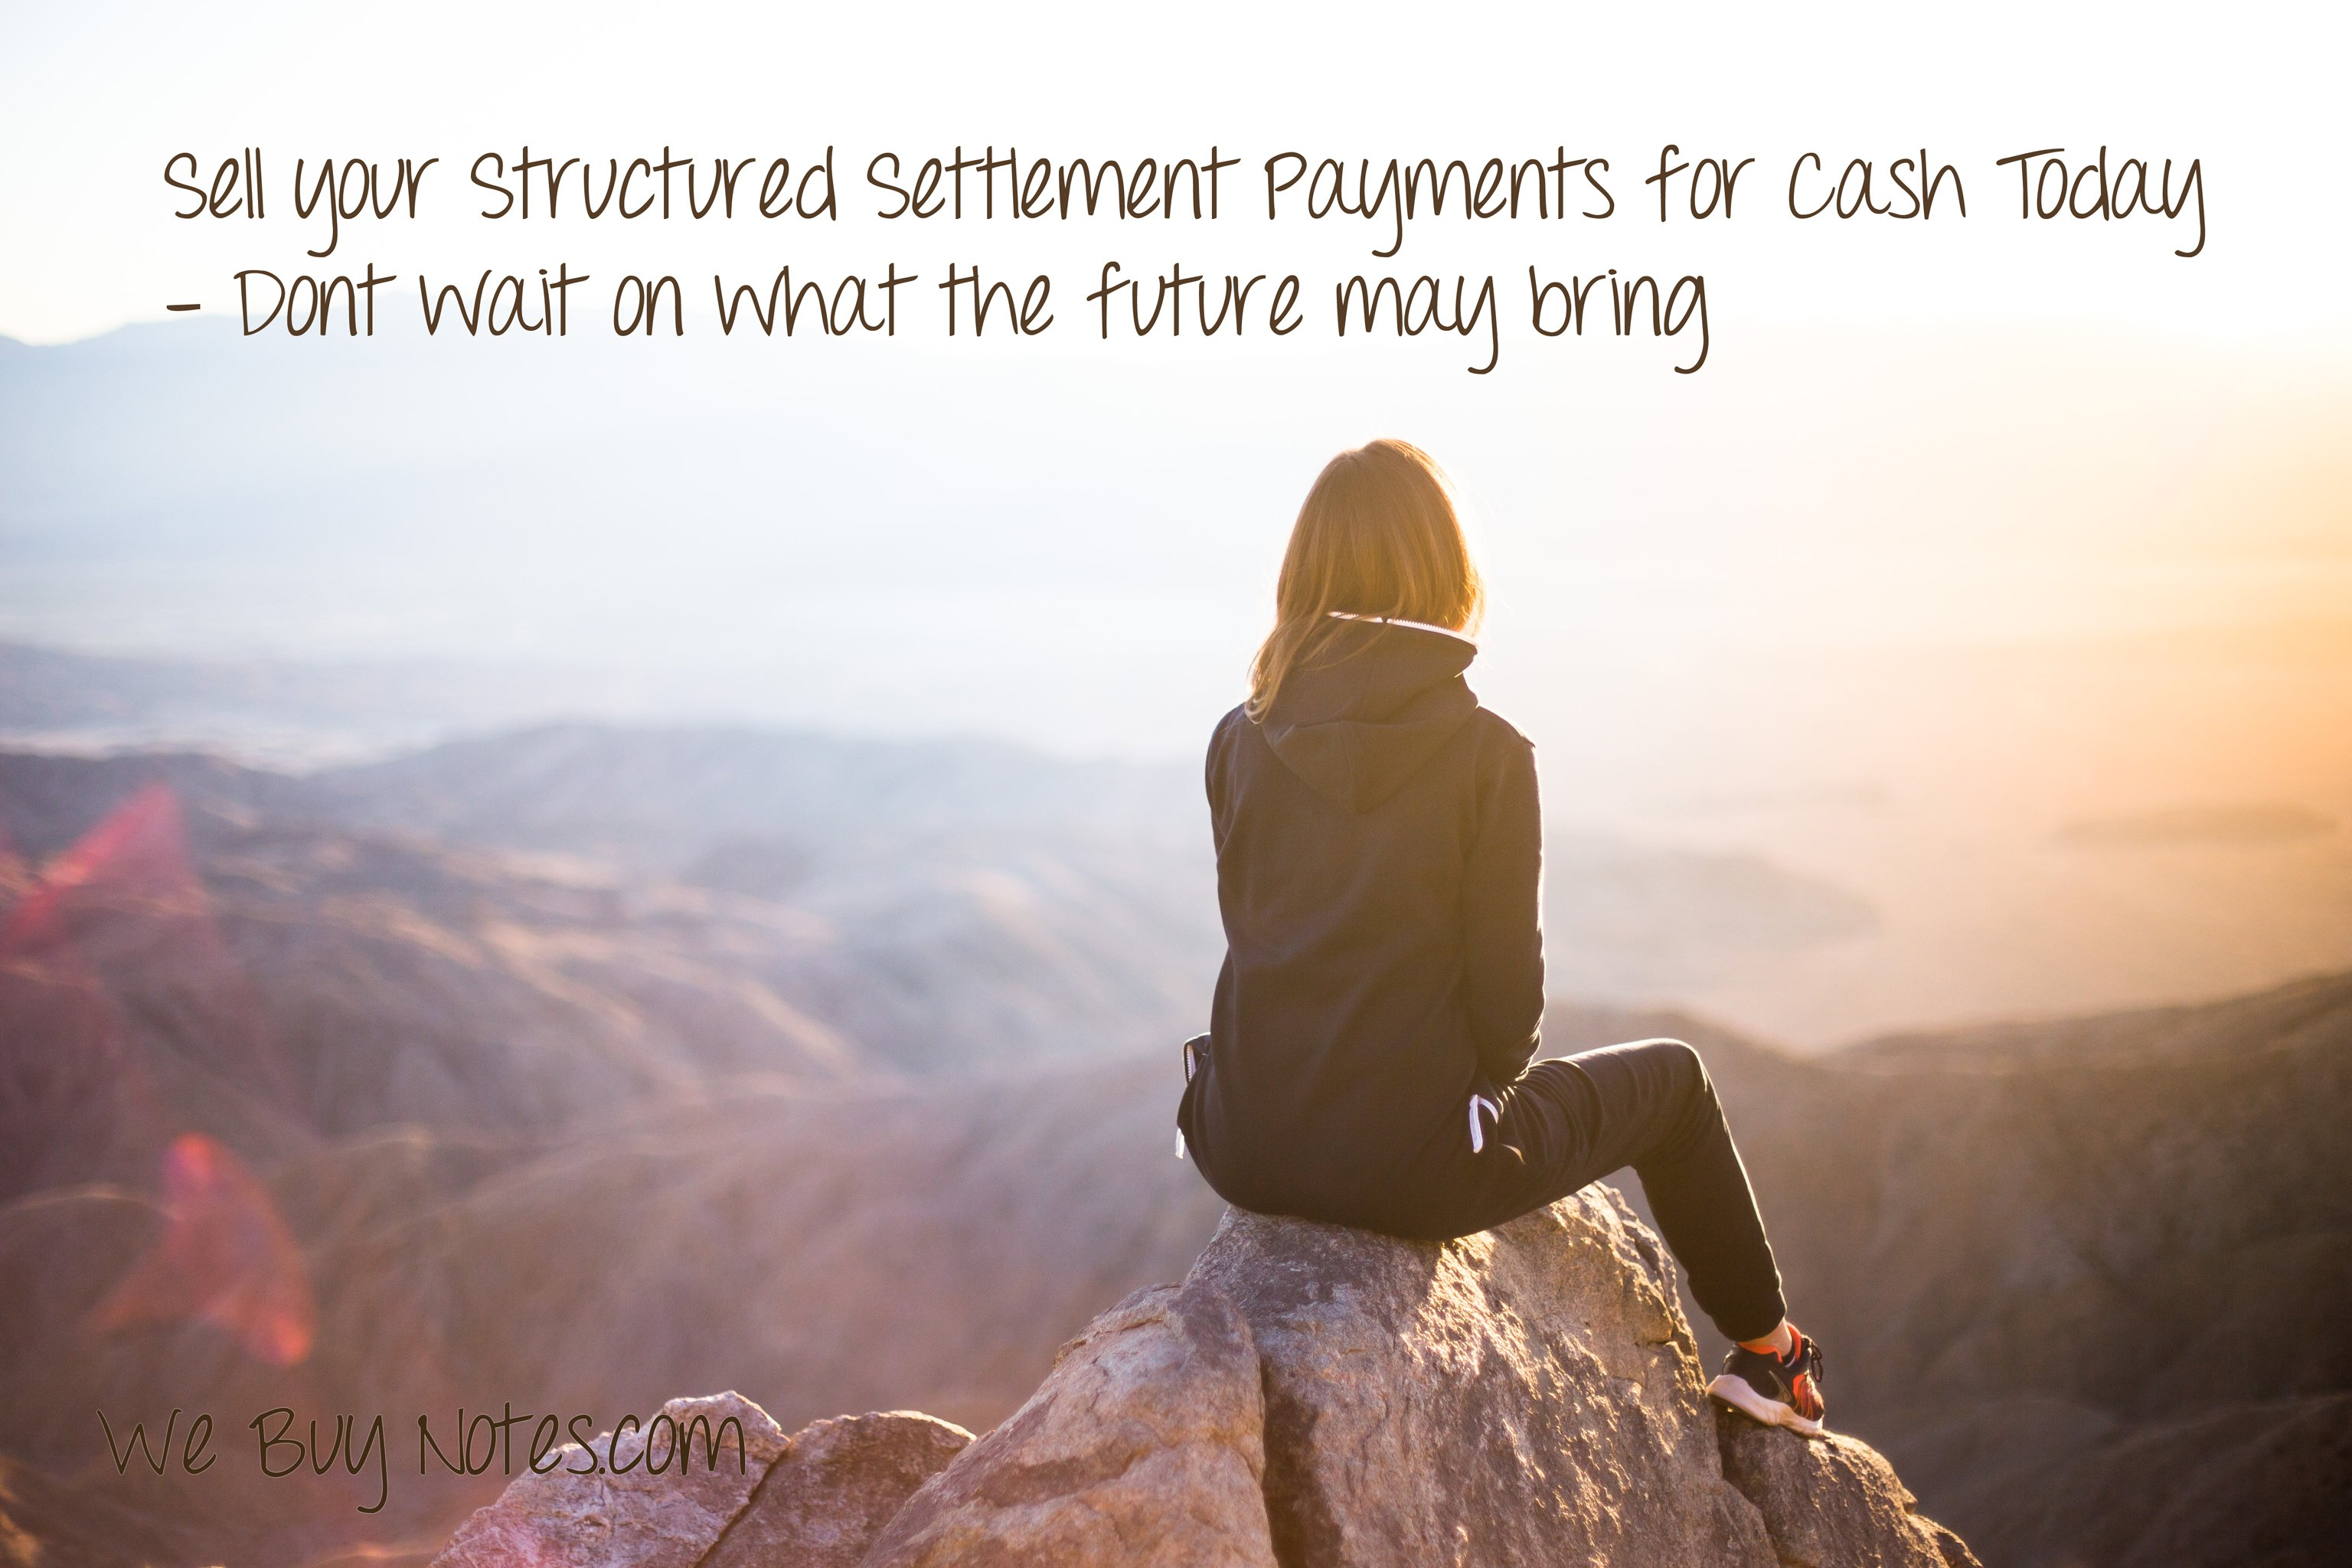 Why Wait on Future Payments? See how and why to sell your